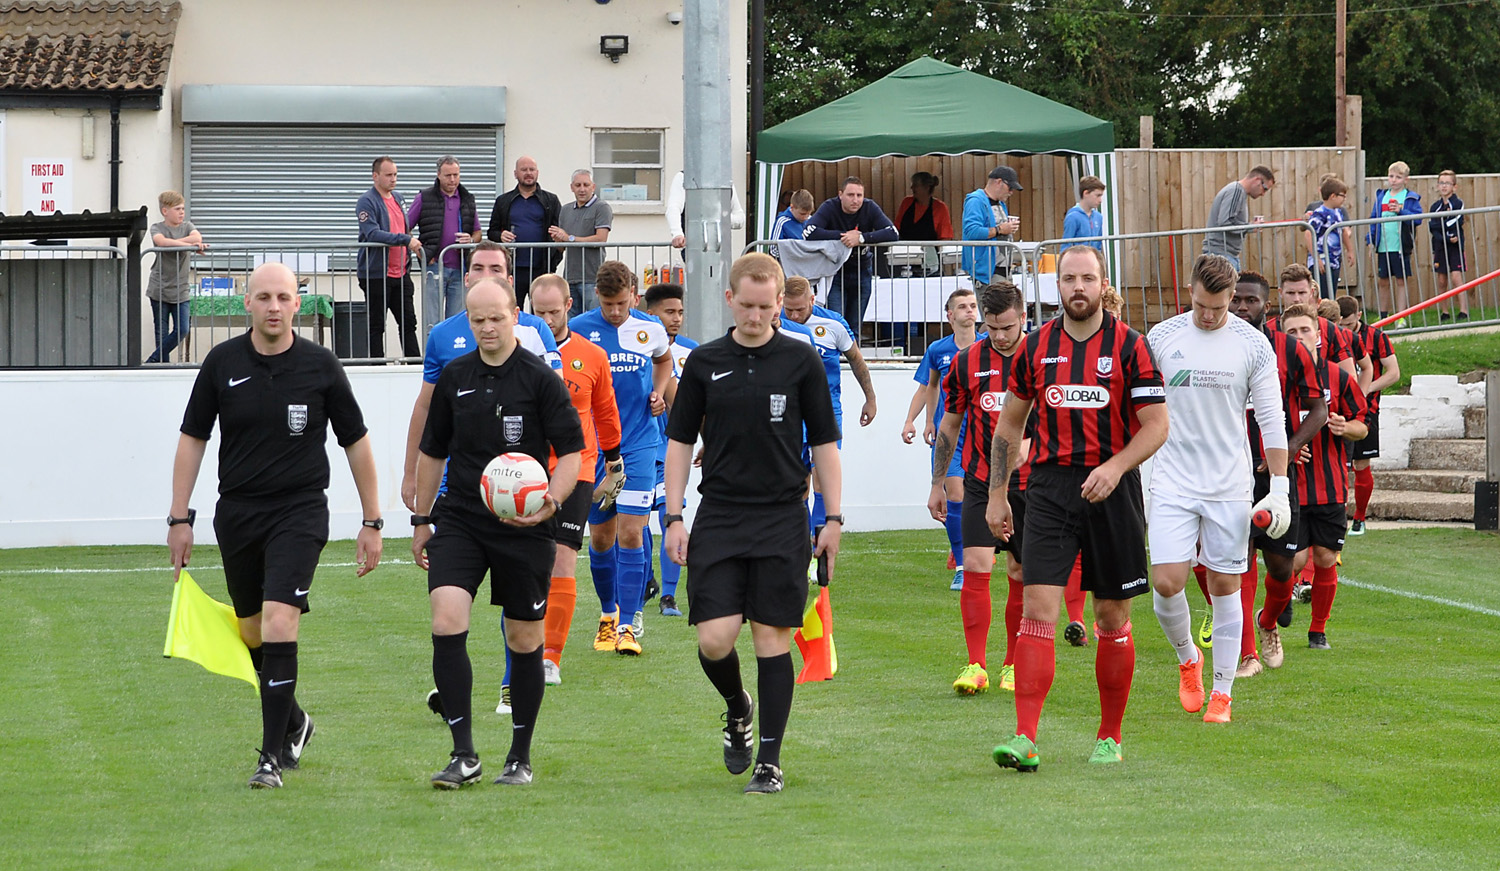 coggeshall-5-1-stanway-rovers-01-08-17-1